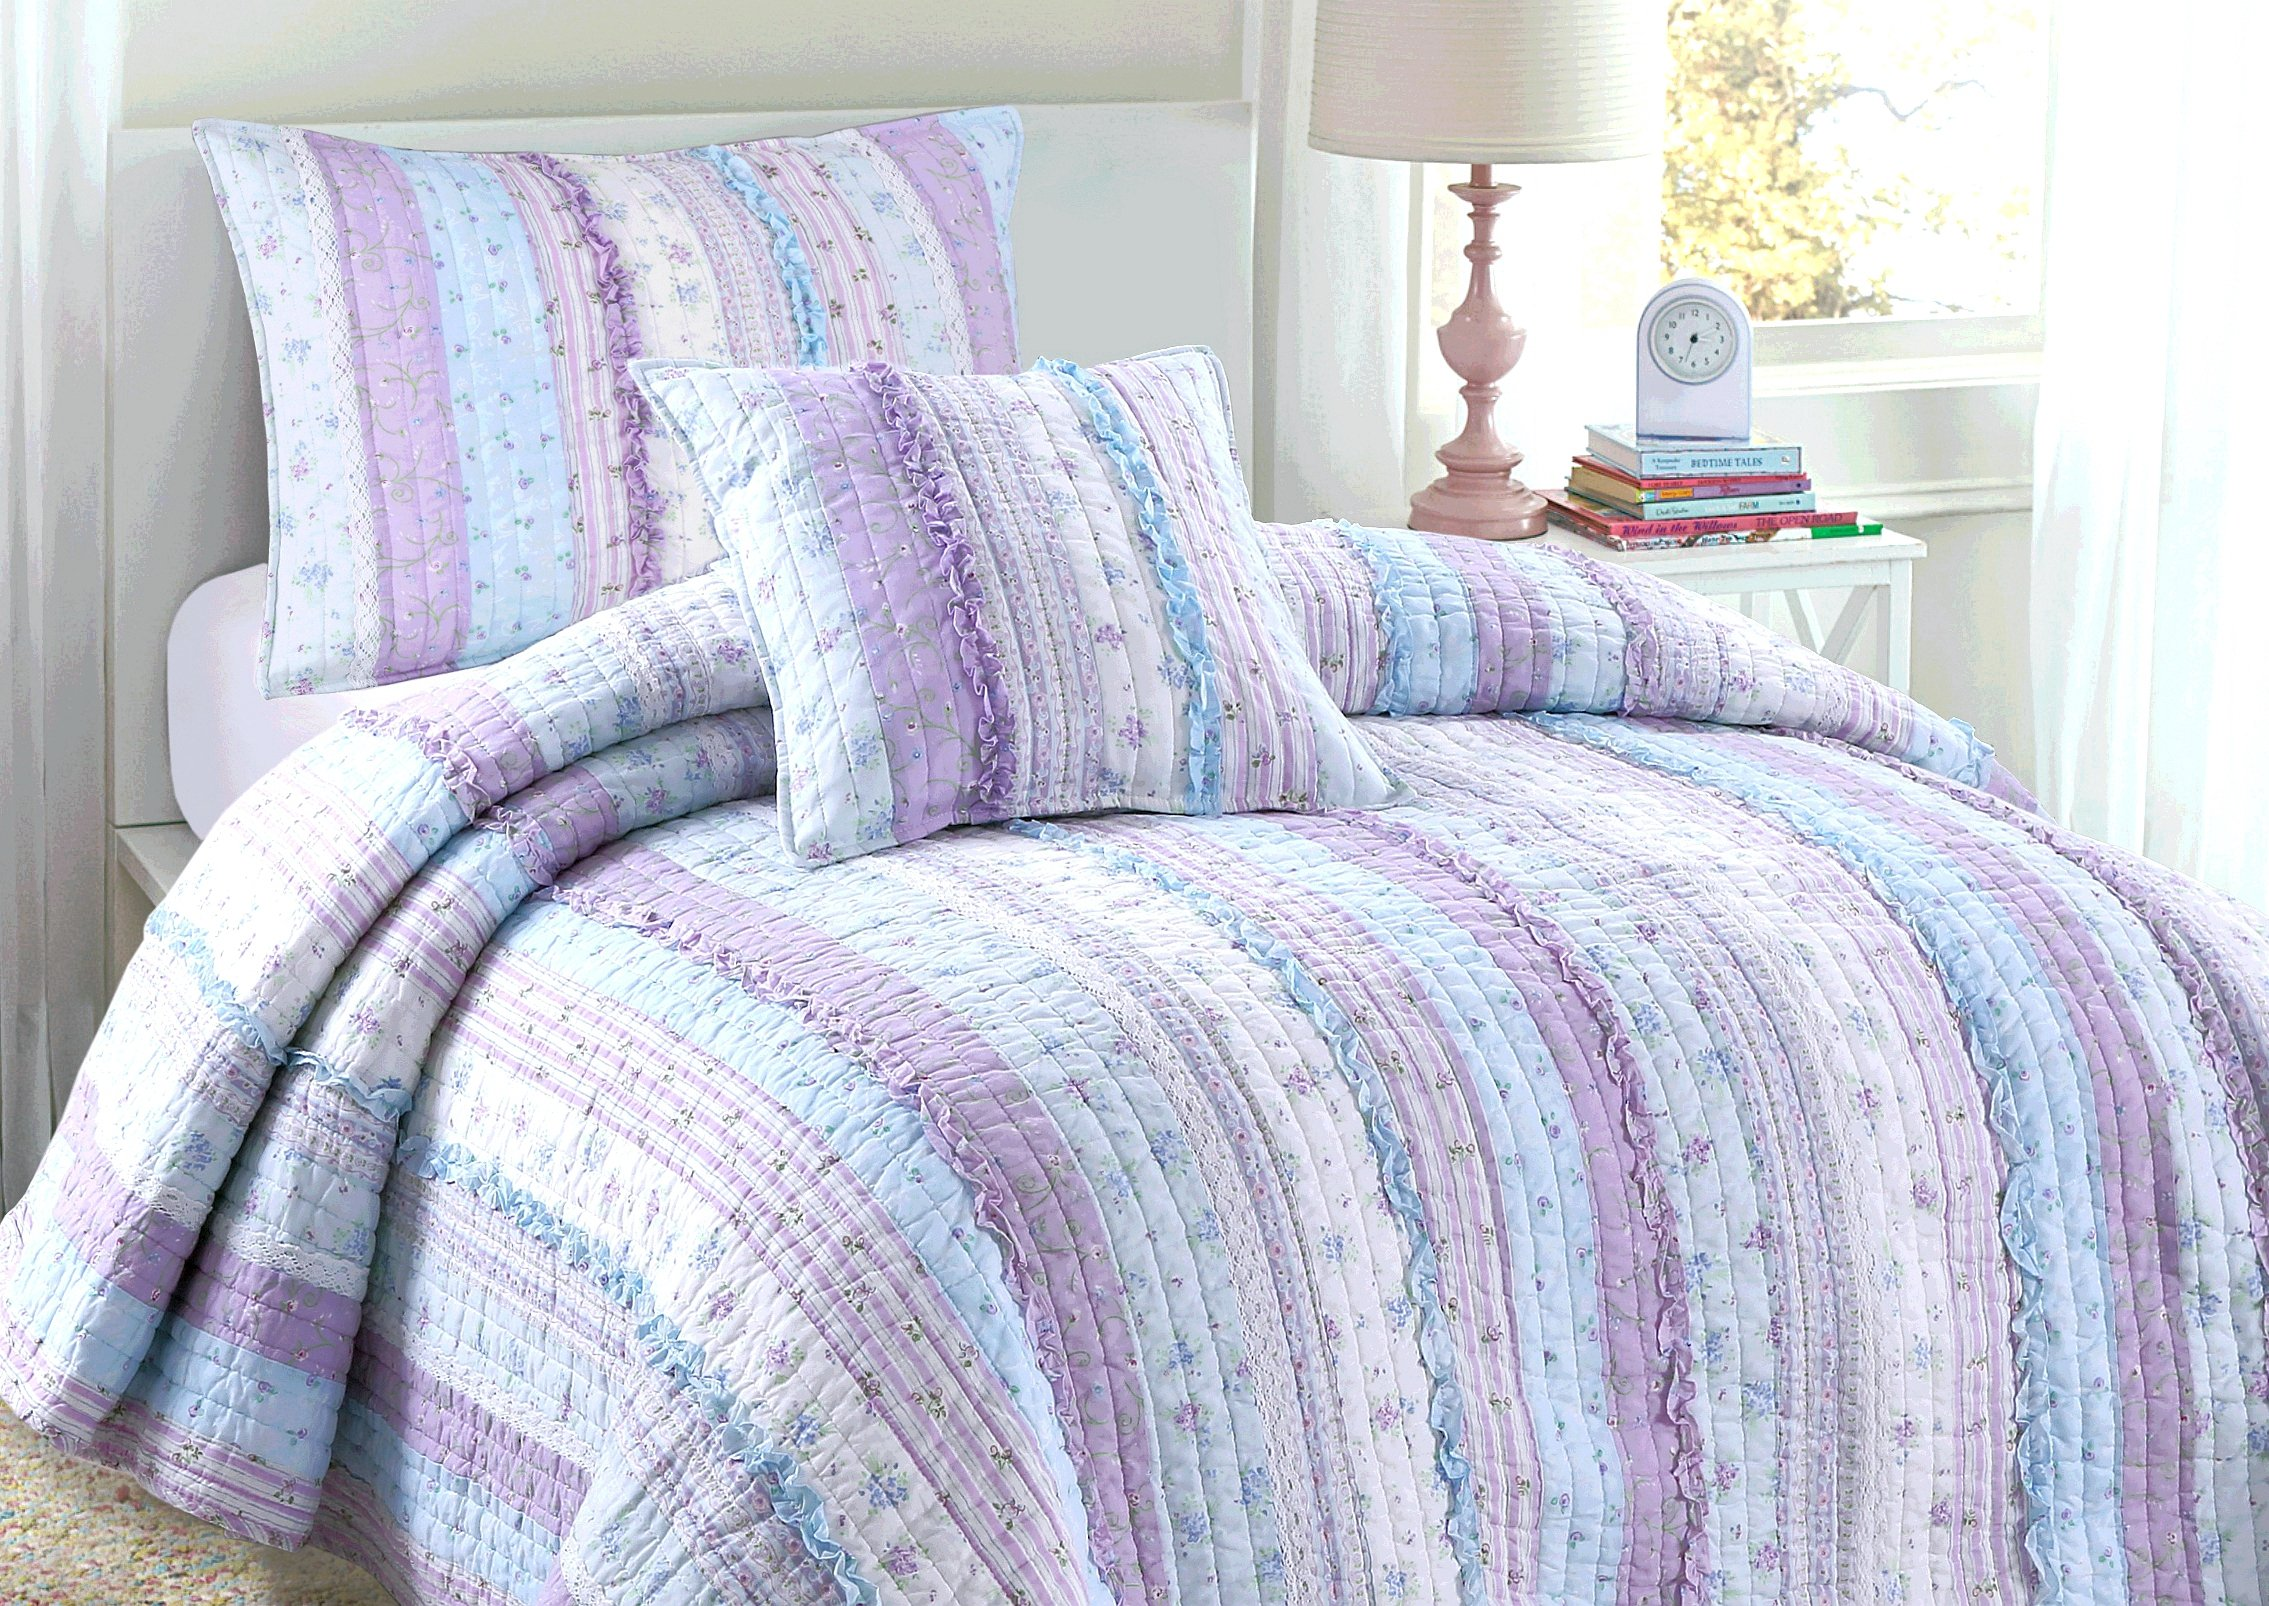 Cozy Line Home Fashions Provence Romantic Chic Lace Light Lavender Orchid Blue Flower Print Stripe Cotton 3D Bedding Quilt Set, Reversible Coverlet, Bedspread, Gifts for Girls Women (King - 3 Piece)